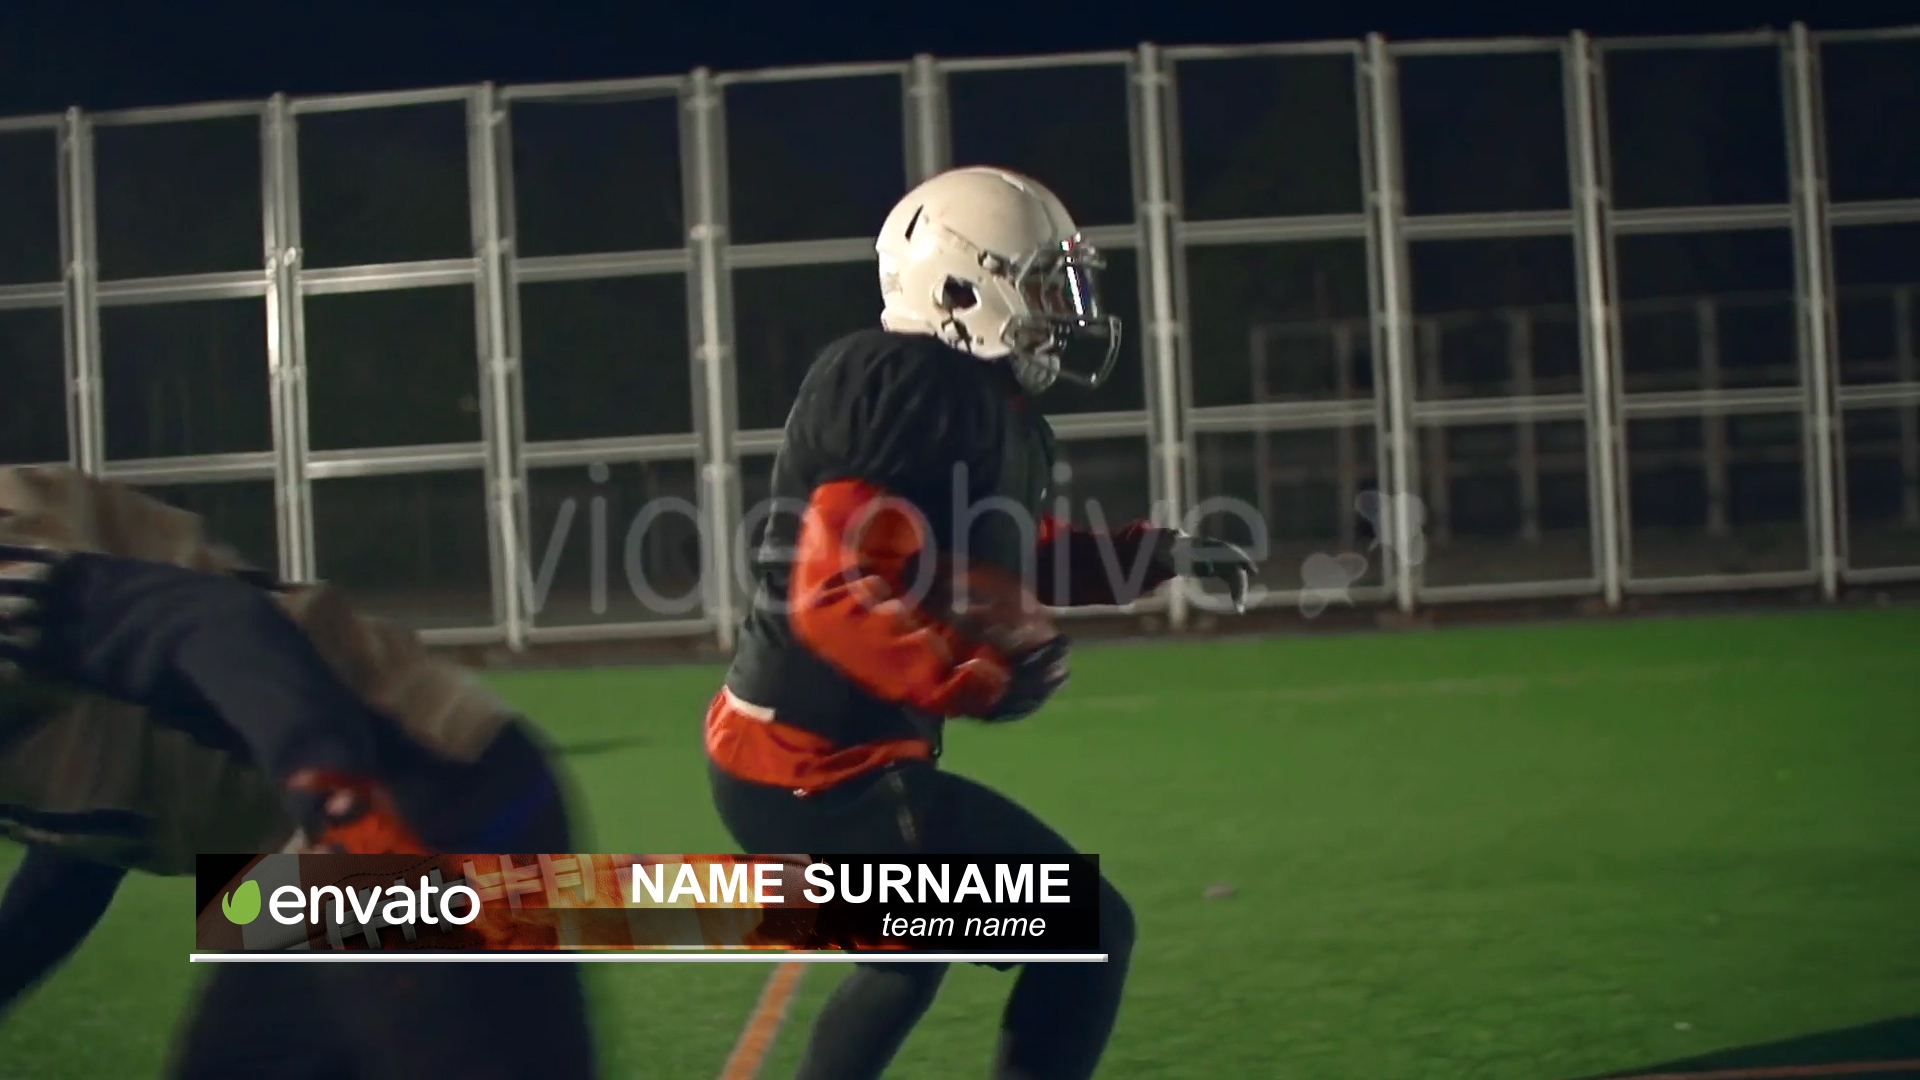 Football template, Football Intro, Football AE project, Free, American football intro, American football, football, US, United states, Canada, gridiron football,Defensive unit, Offensive unit, quarterback, Scoring, Field and equipment, Advancing, the, ball, and downs, NFL,  National Football League,  National Collegiate Athletic Association, NCAA, football league, League, College football, professional football,  Division I,  Division II,  Division III, Division, championship, Super Bowl, The NFL championship game,  European Football League, EFL,  Eurobowl, EFAF Cup, Cup, Students, American football, Tom Brady, Peyton Manning, New England Patriots, Peyton Manning, Denver Broncos, Aaron Rodgers, Green Bay Packers, Drew Brees, Football, American Football, Madden, Rugby, Football Intro, American Football Intro, NFL, Draft, NFL Football, Superbowl, Super Bowl, super bowl, National Football League,  American Football League, Energetic, fun, dynamic logo reveal, broadcast, bumper, champions league, New Orleans Saints, J. J. Watt, Houston Texans, Adrian Peterson, New Orleans Saints, Cam Newton, Carolina Panthers, Joe Montana, Kansas City Chiefs, Ben Roethlisberger, Pittsburgh Steelers,